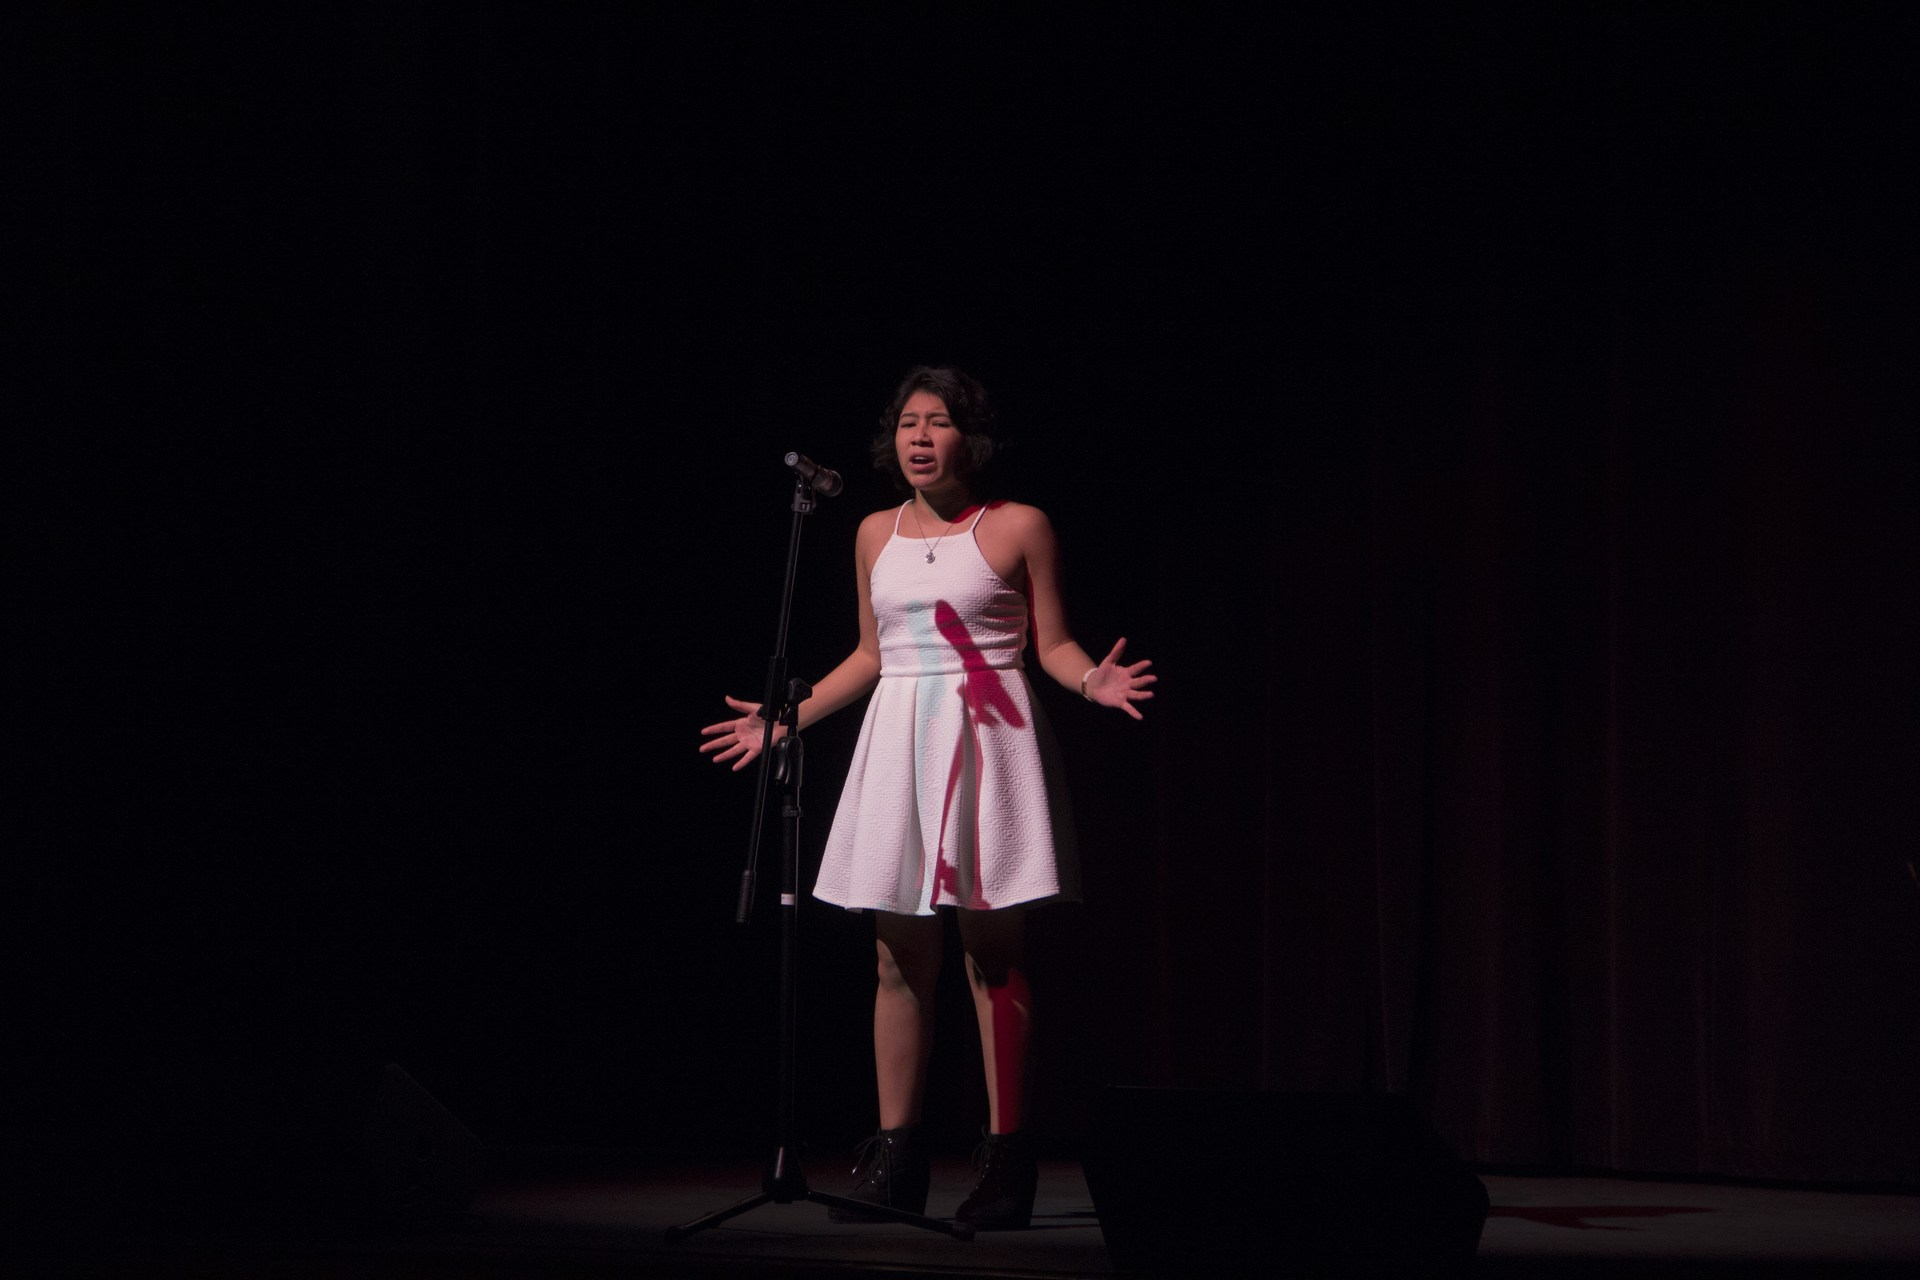 2nd girl singing solo